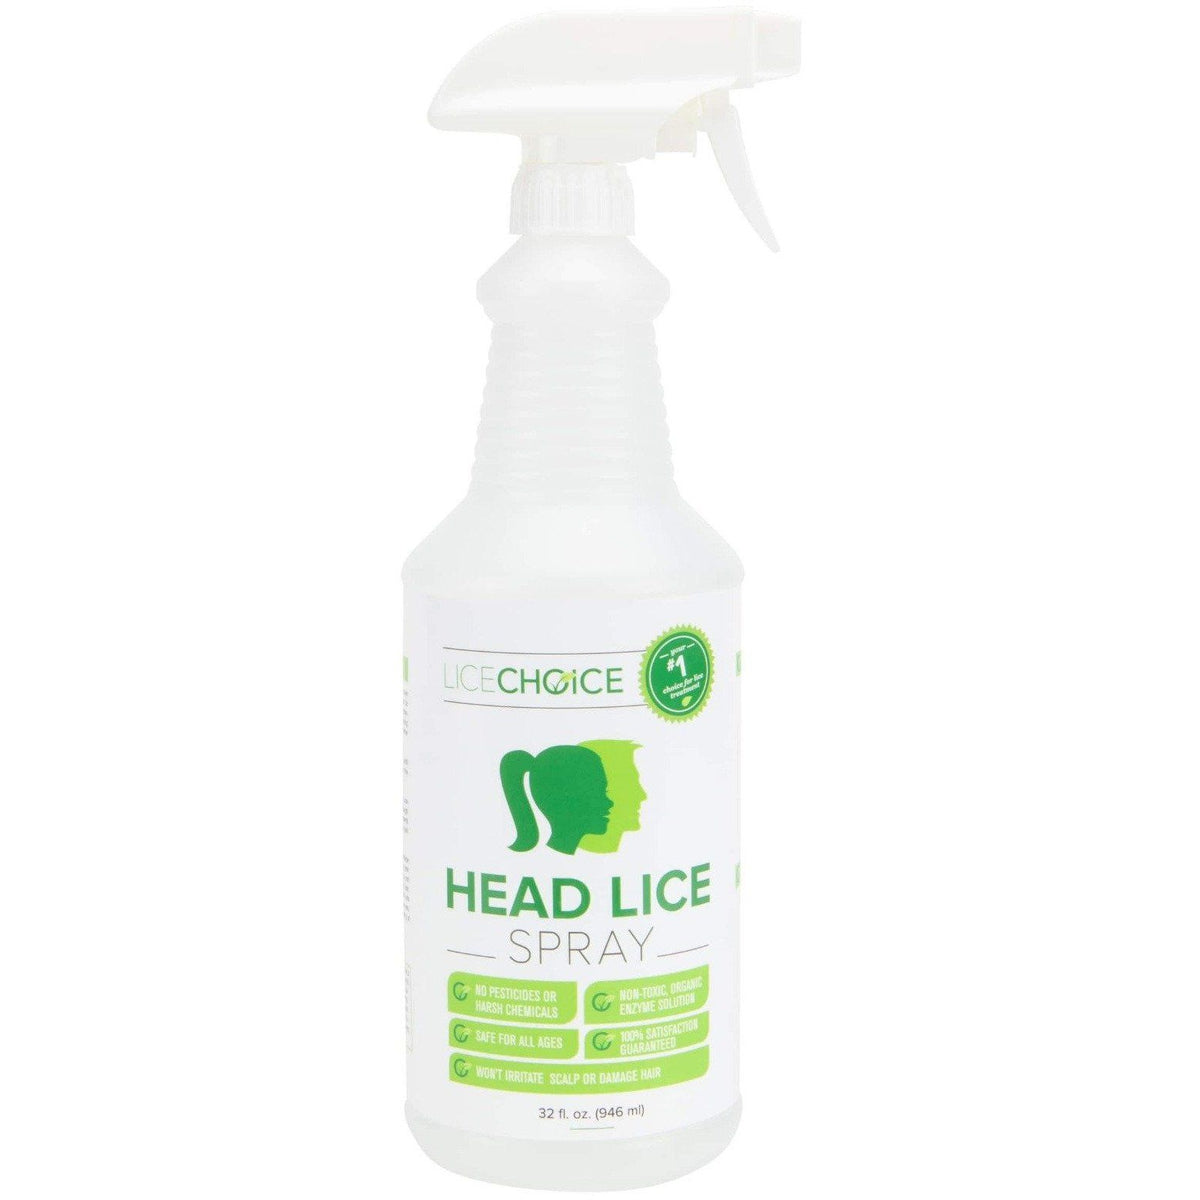 Lice Choice Head Lice Treatment Spray 32oz Bottle.